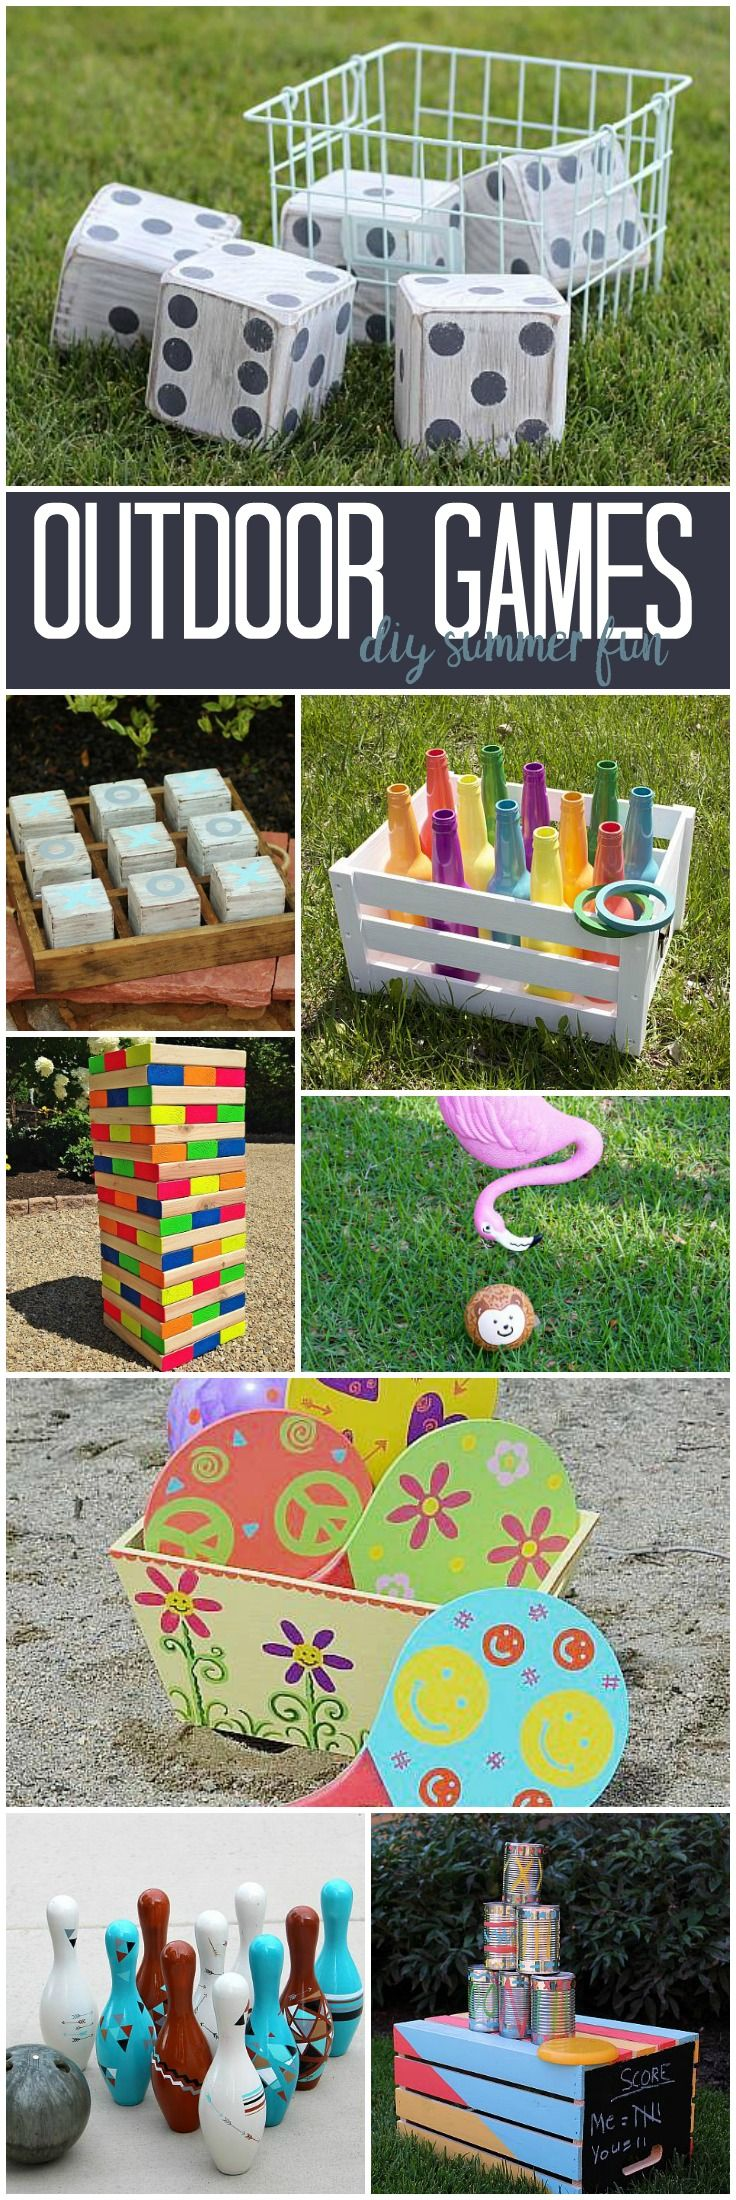 Diy outdoor games from the decoart project gallery diy outdoor games from the decoart project gallery get free step by step tutorials for craft mixed media kid and home decor projects junglespirit Image collections